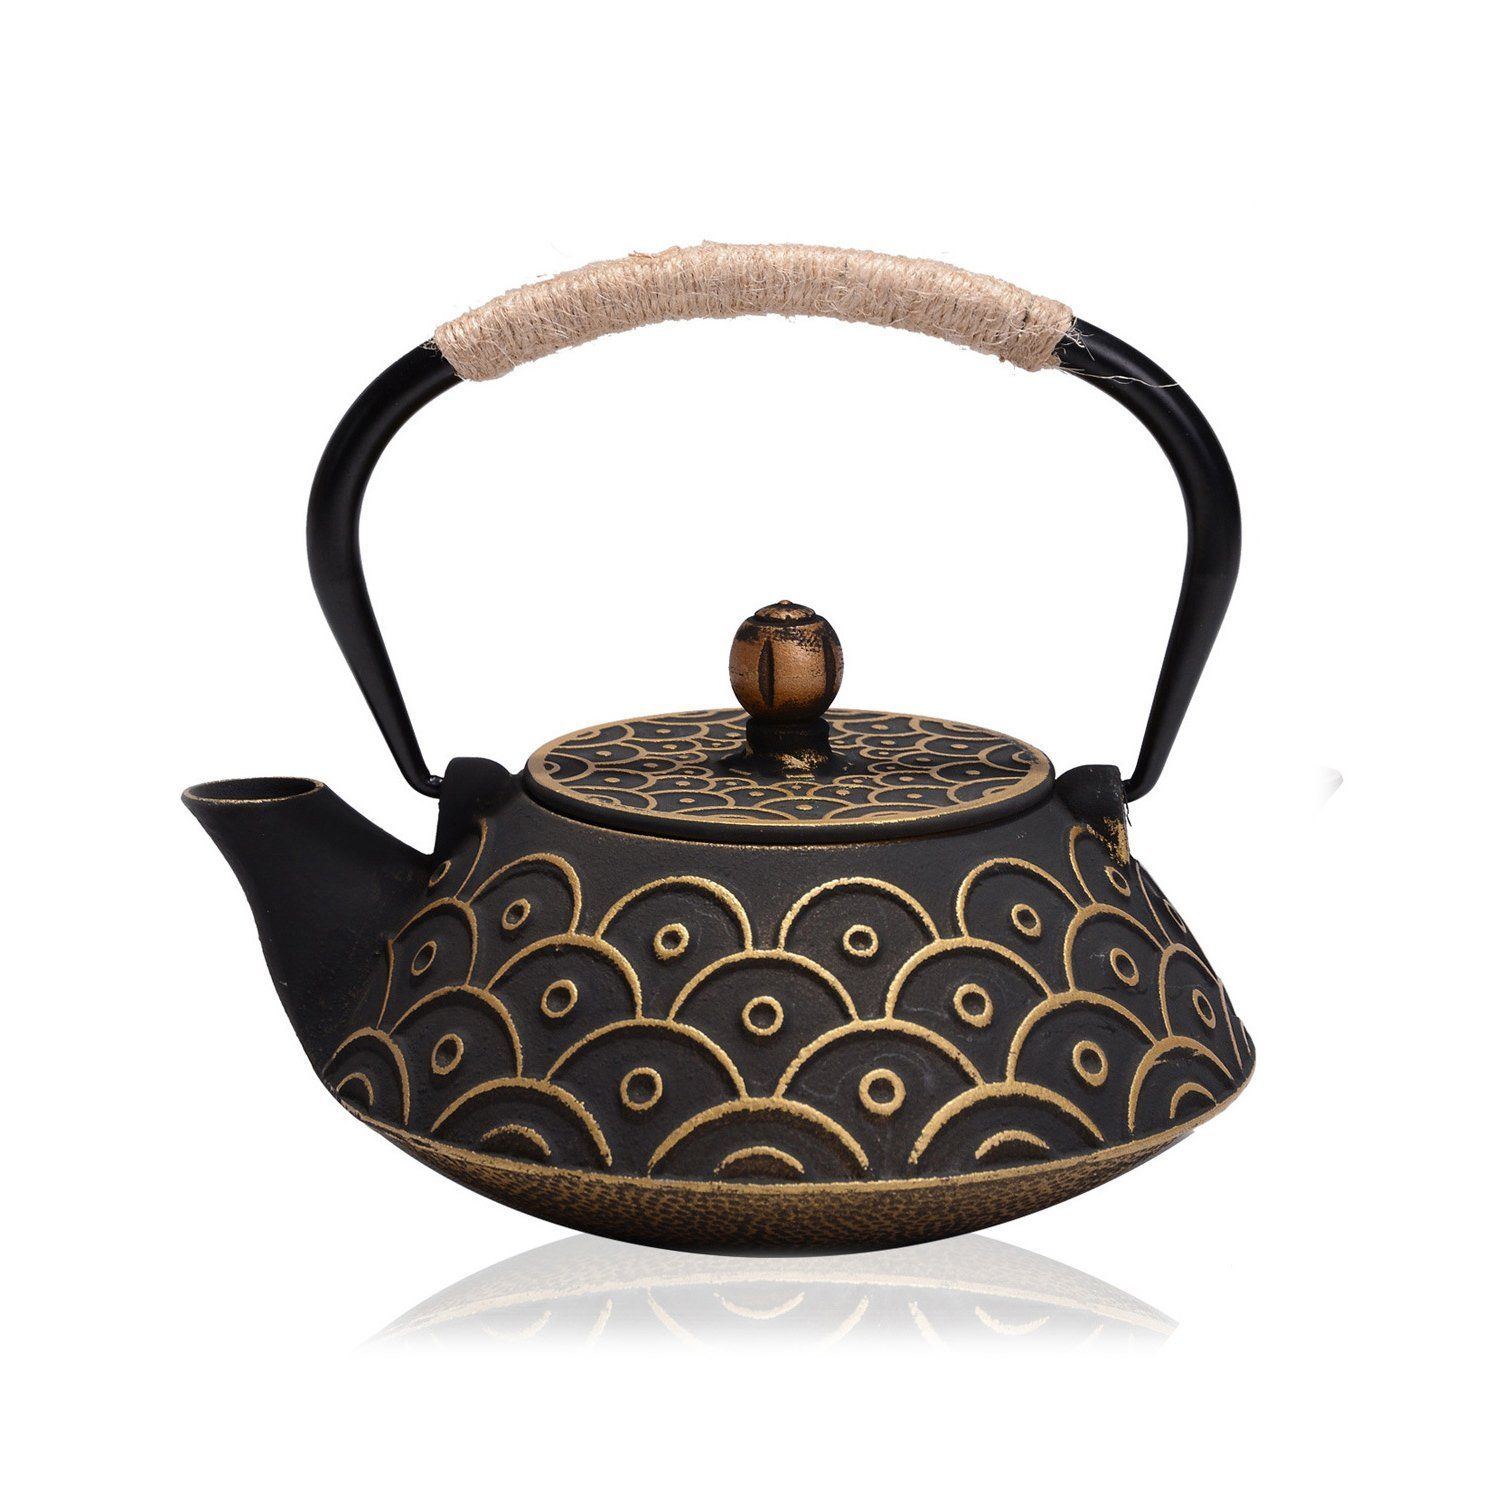 Hues N Brews Teapot With Stainless Steel Lid And Metal Mesh Basket Insert Huesnbrews Tea Pots Metal Mesh Graphic Tee Shirts